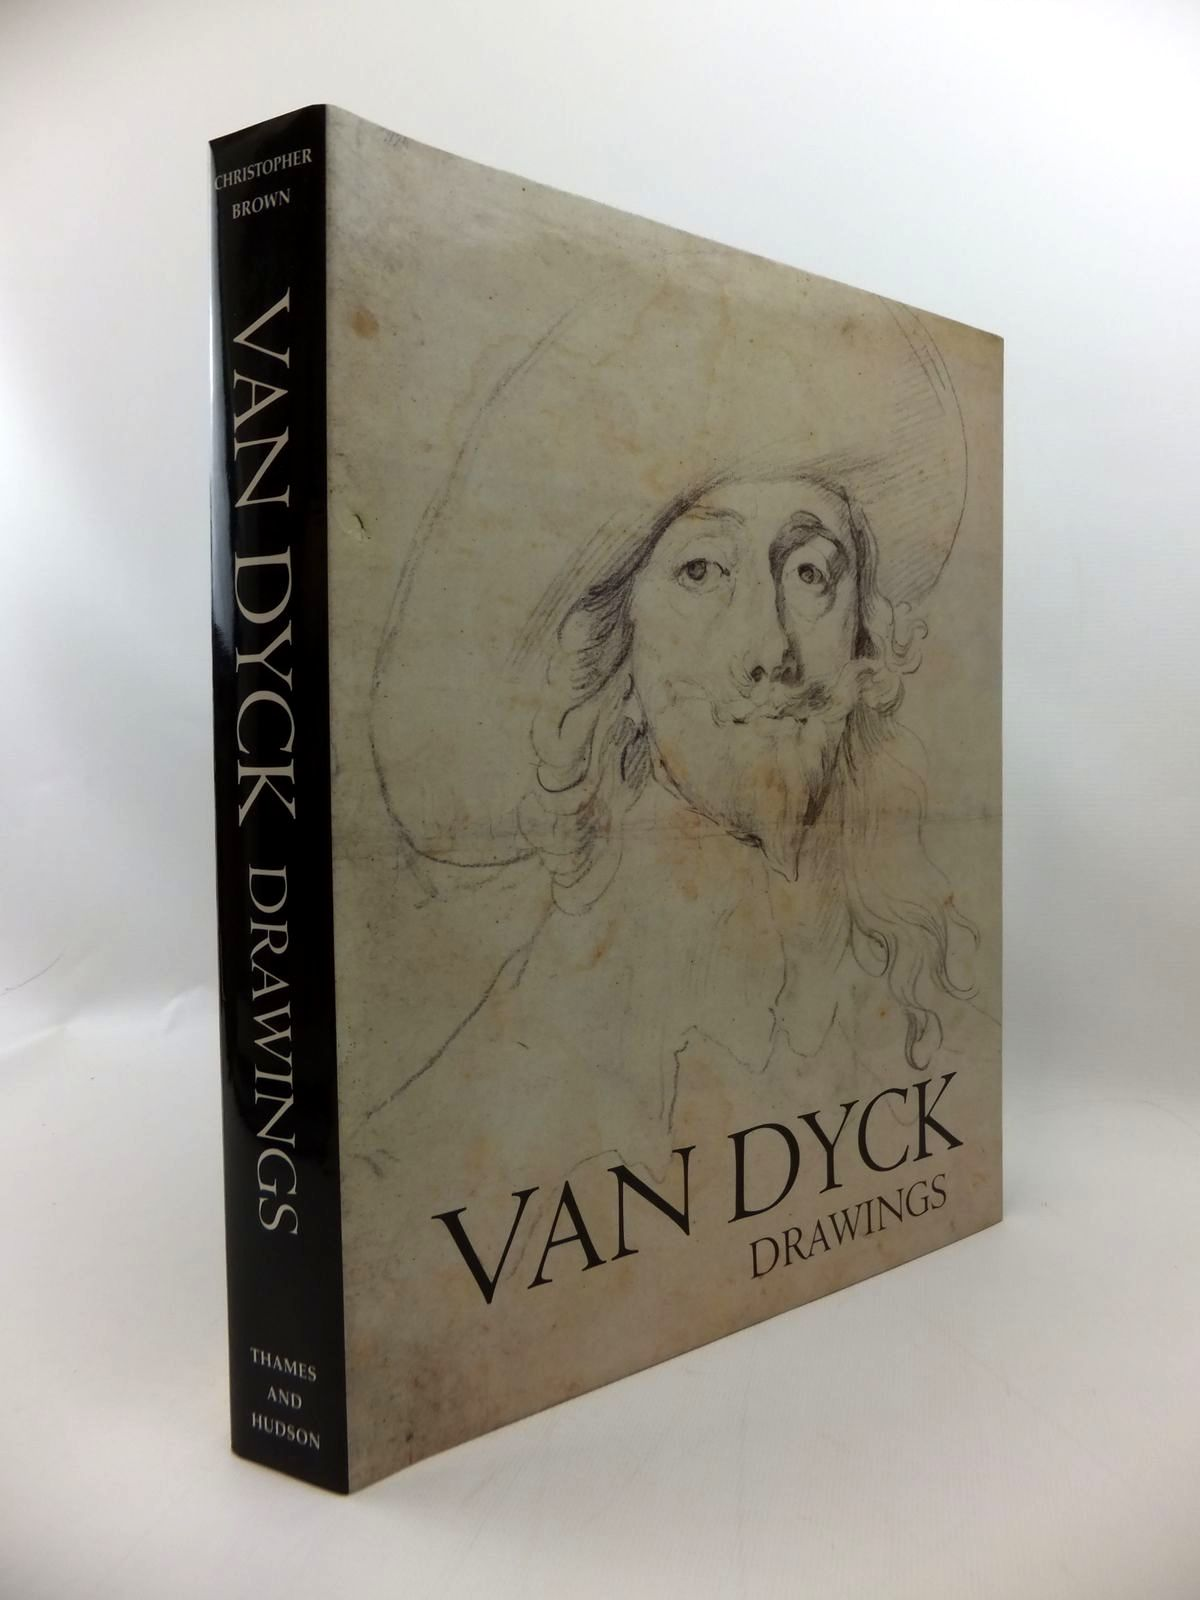 Photo of VAN DYCK DRAWINGS written by Brown, Christopher illustrated by Van Dyck, Anthony published by Thames and Hudson (STOCK CODE: 1814462)  for sale by Stella & Rose's Books